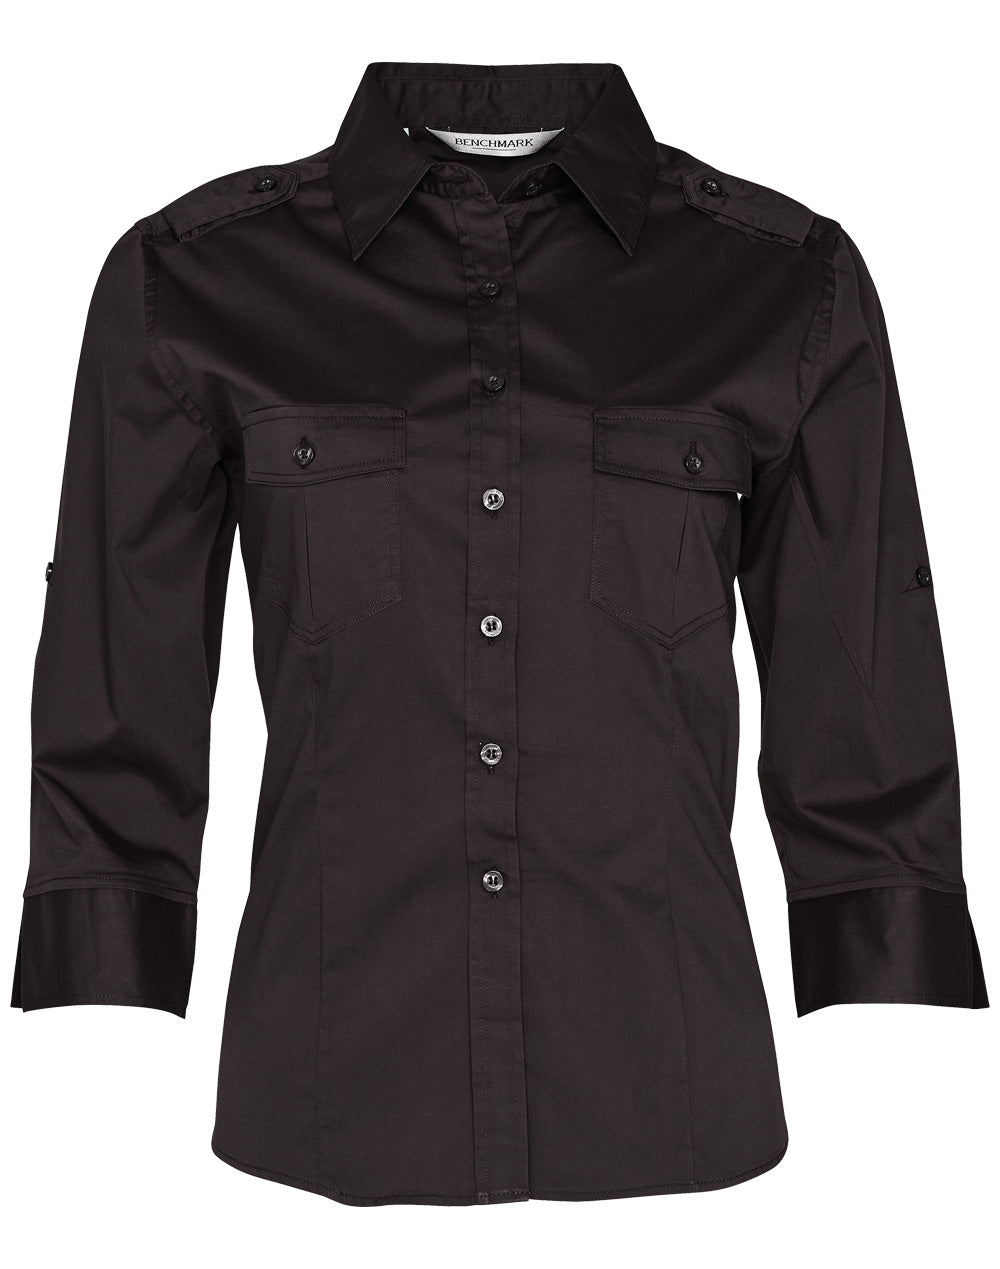 Winning Spirit Women's 3/4 Sleeve Military Shirt (M8913)